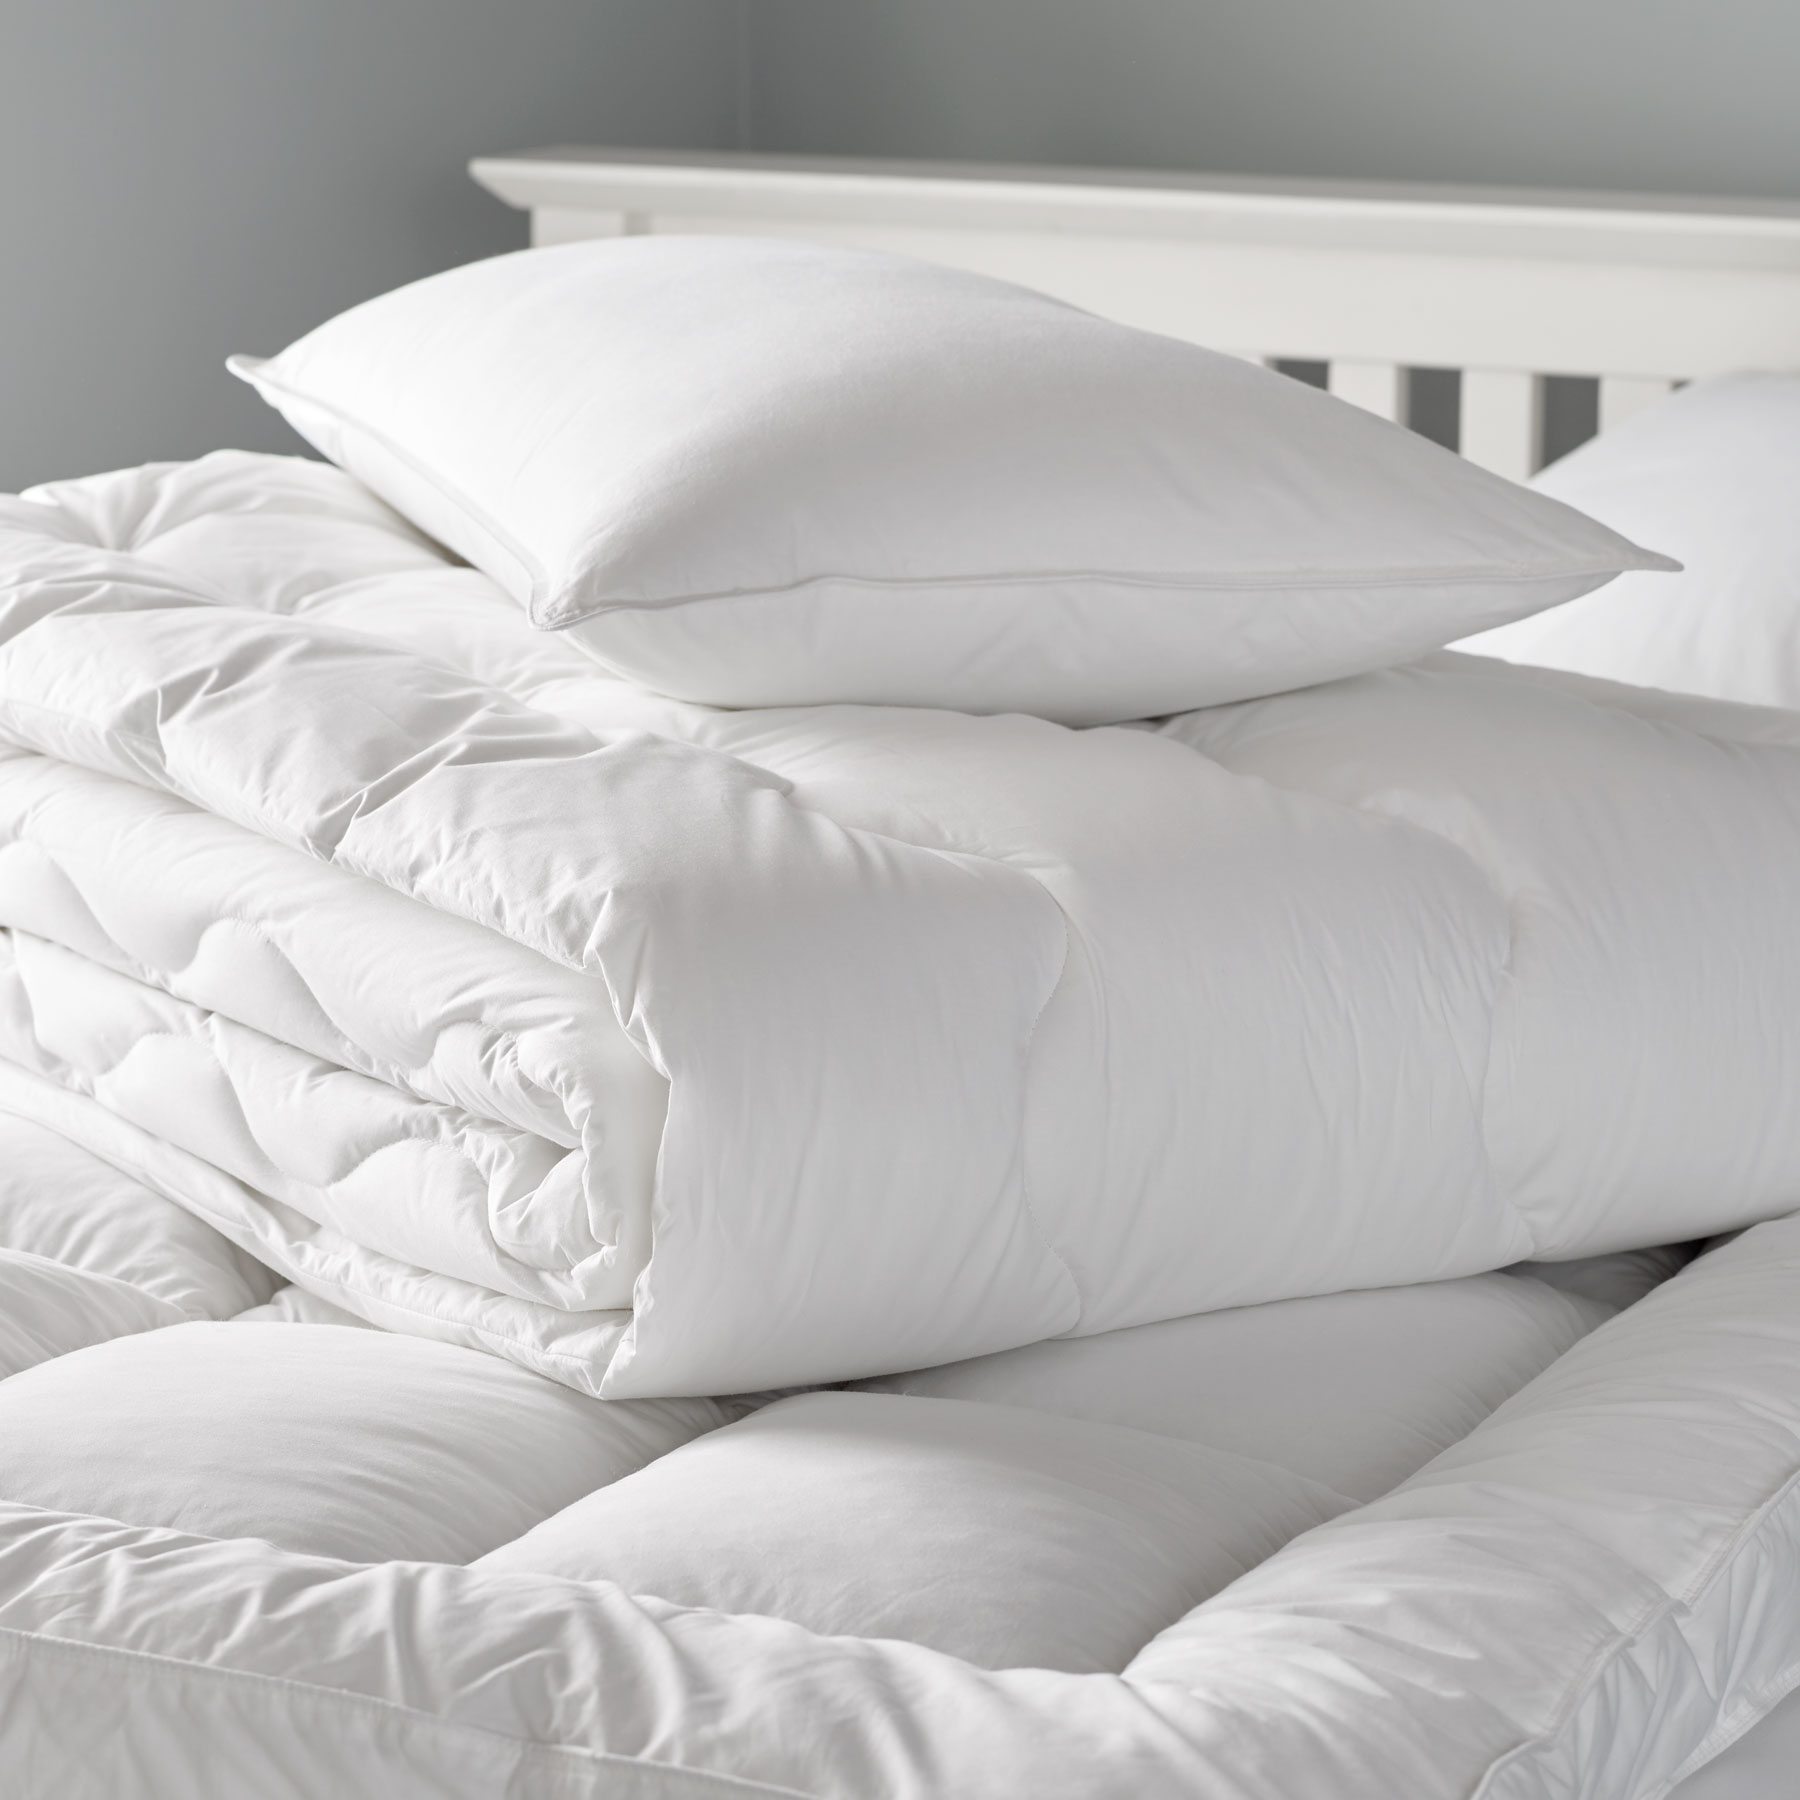 liddell duvets pillows toppers protectors at bulk prices. Black Bedroom Furniture Sets. Home Design Ideas